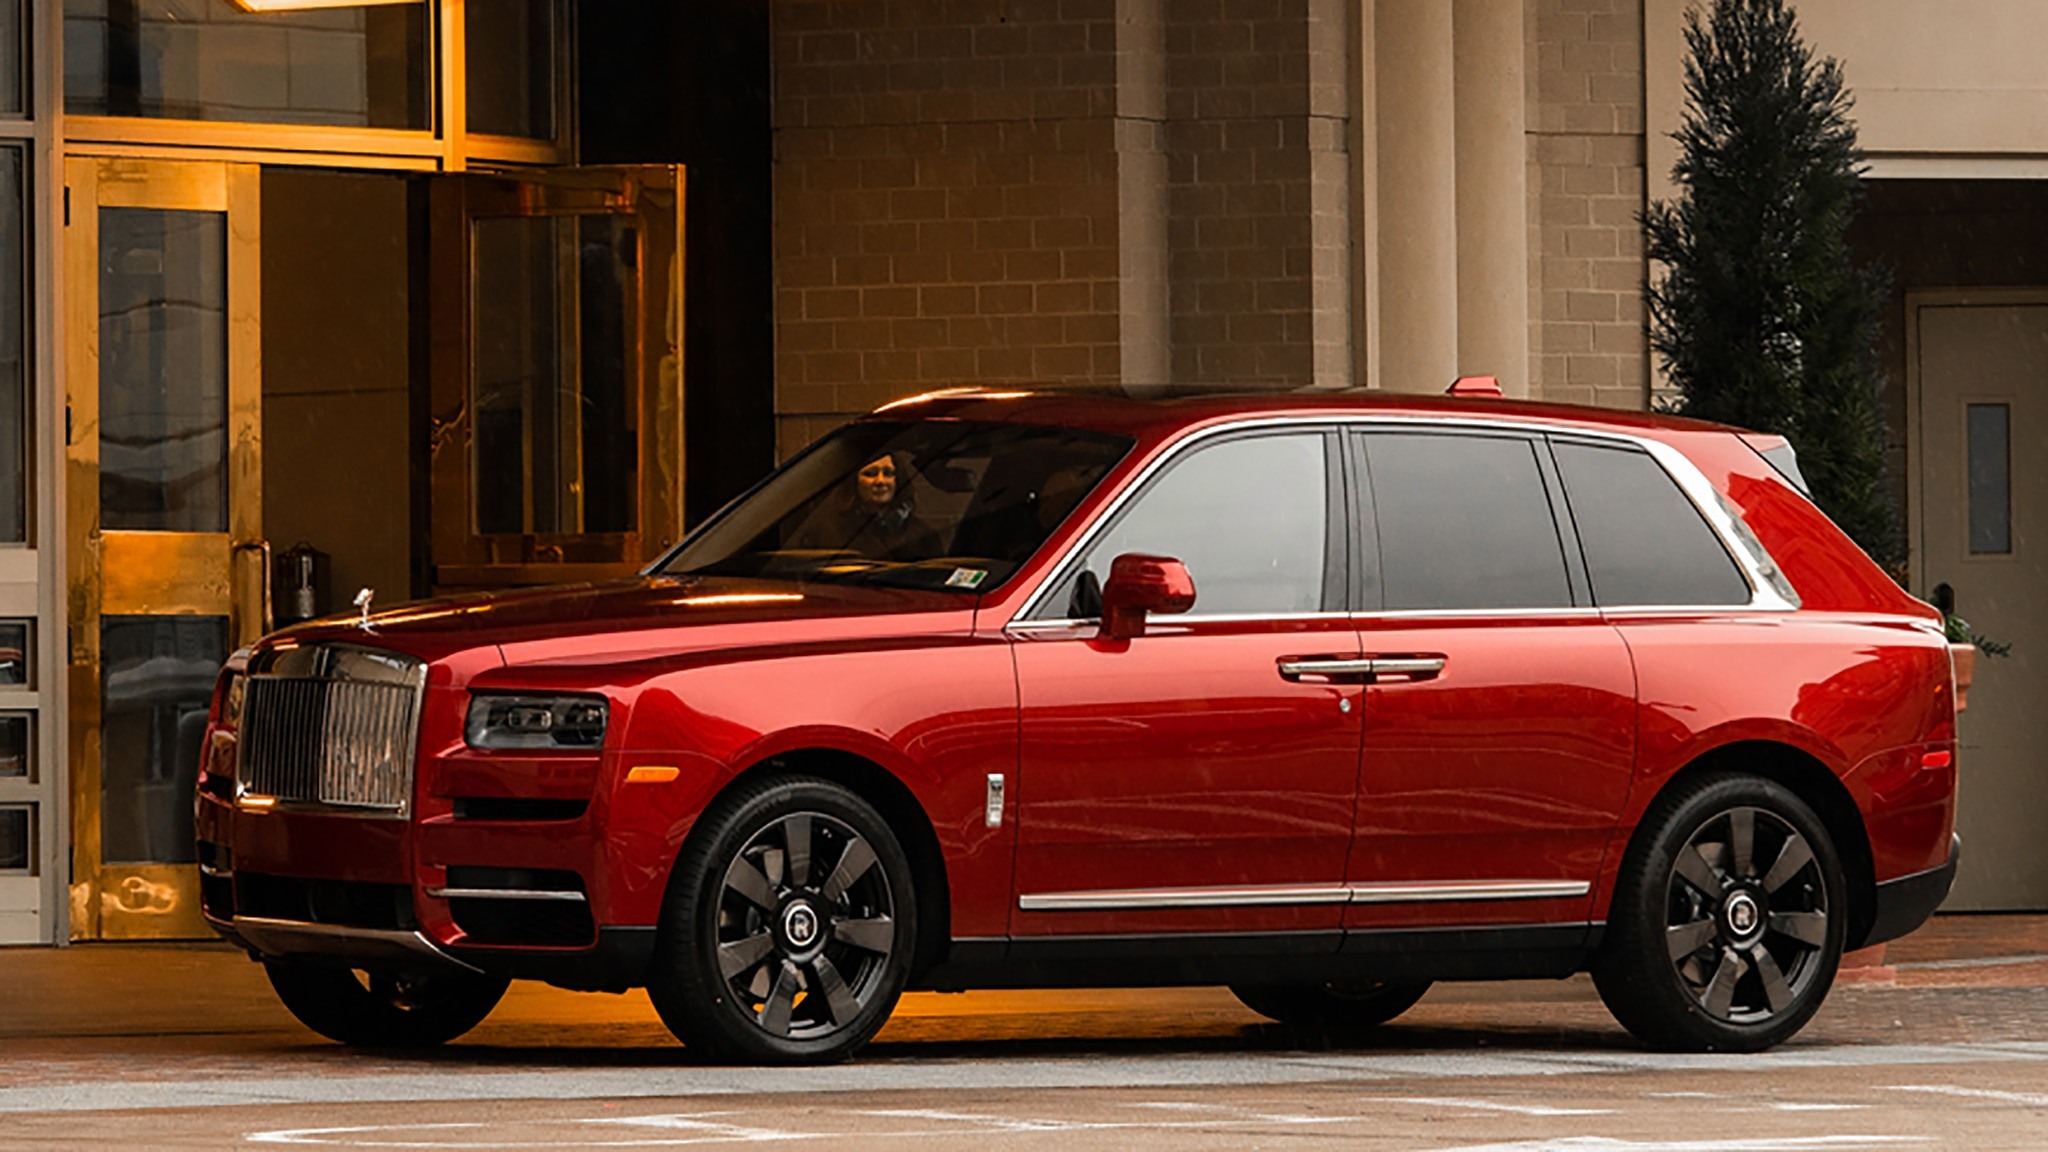 Rolls-Royce's Really Pig News: Three Bespoke Cars For